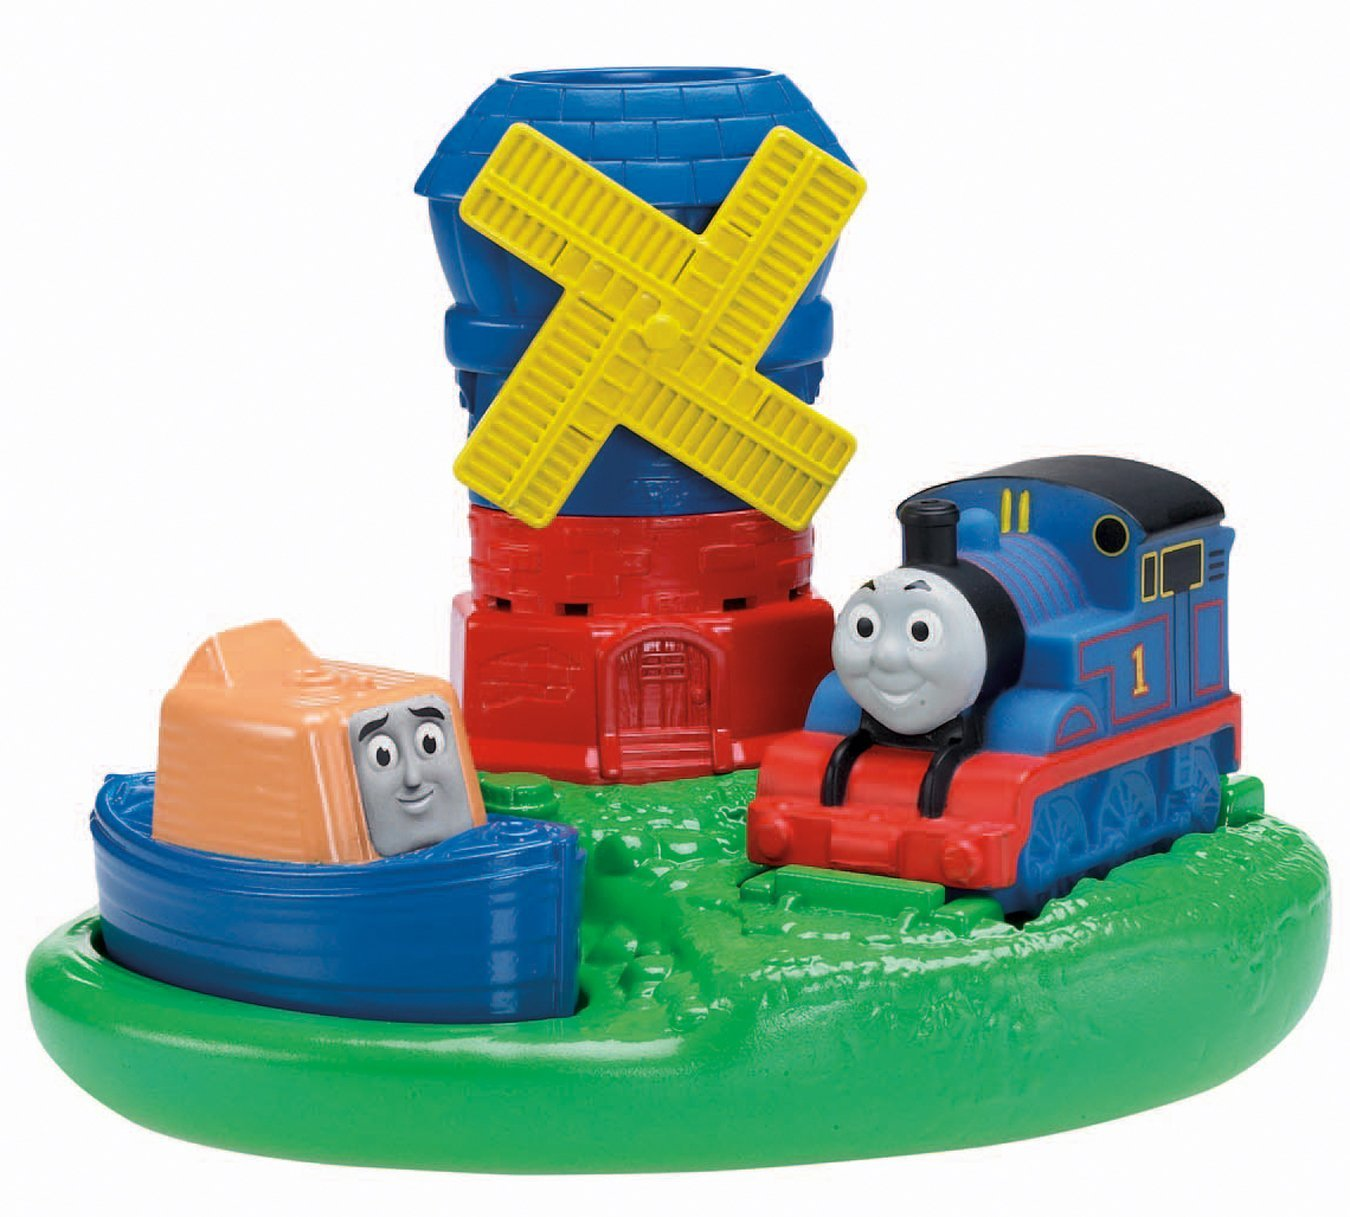 Thomas the Train: Island of Sodor Bath Playset, Have fun in the tub ...